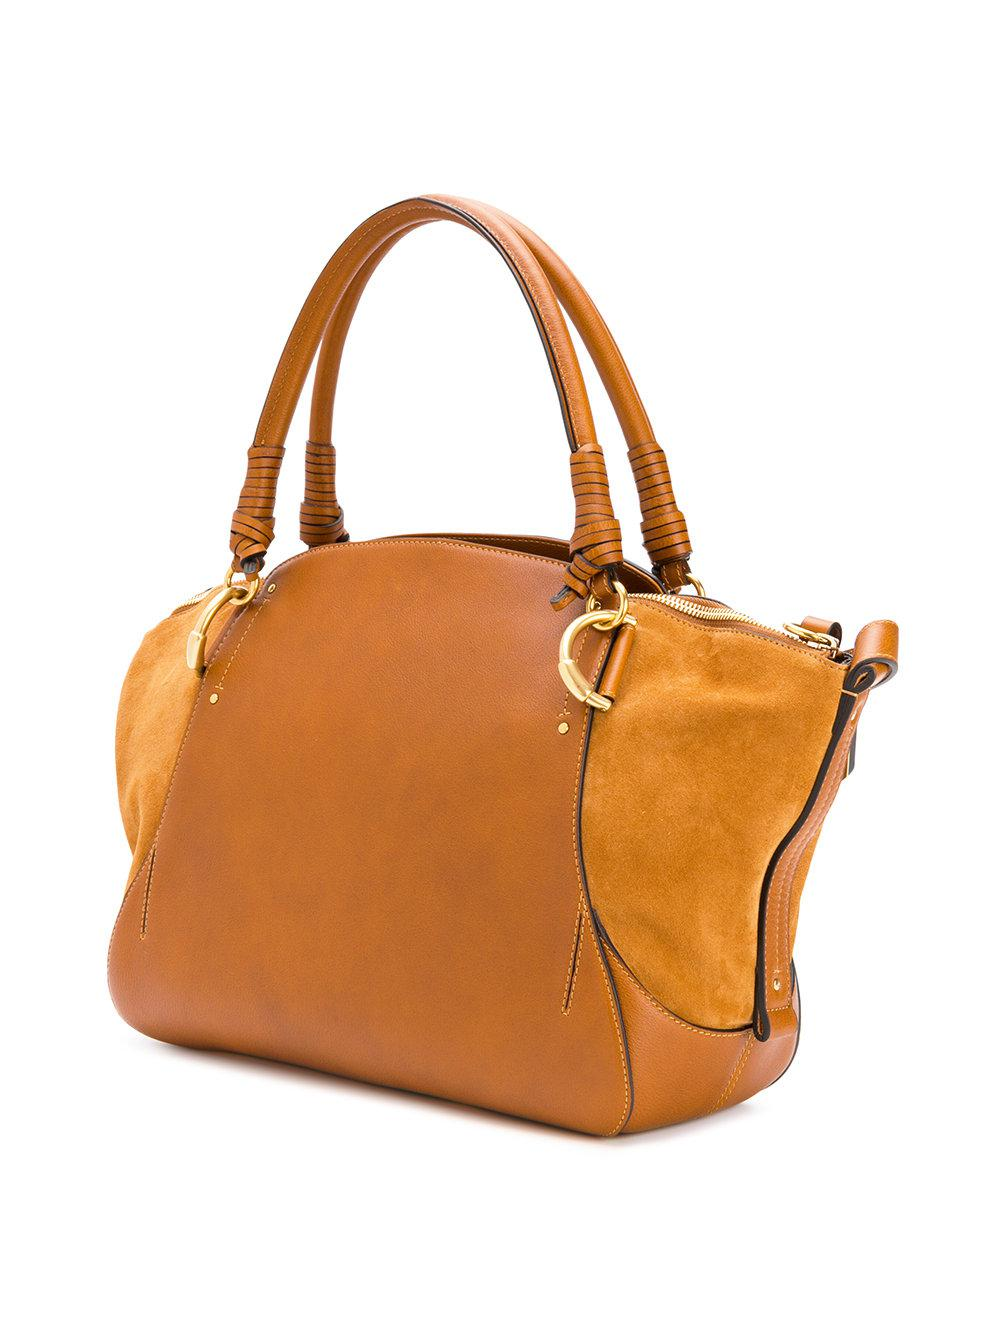 Chloé Leather Owen Tote Bag in Brown